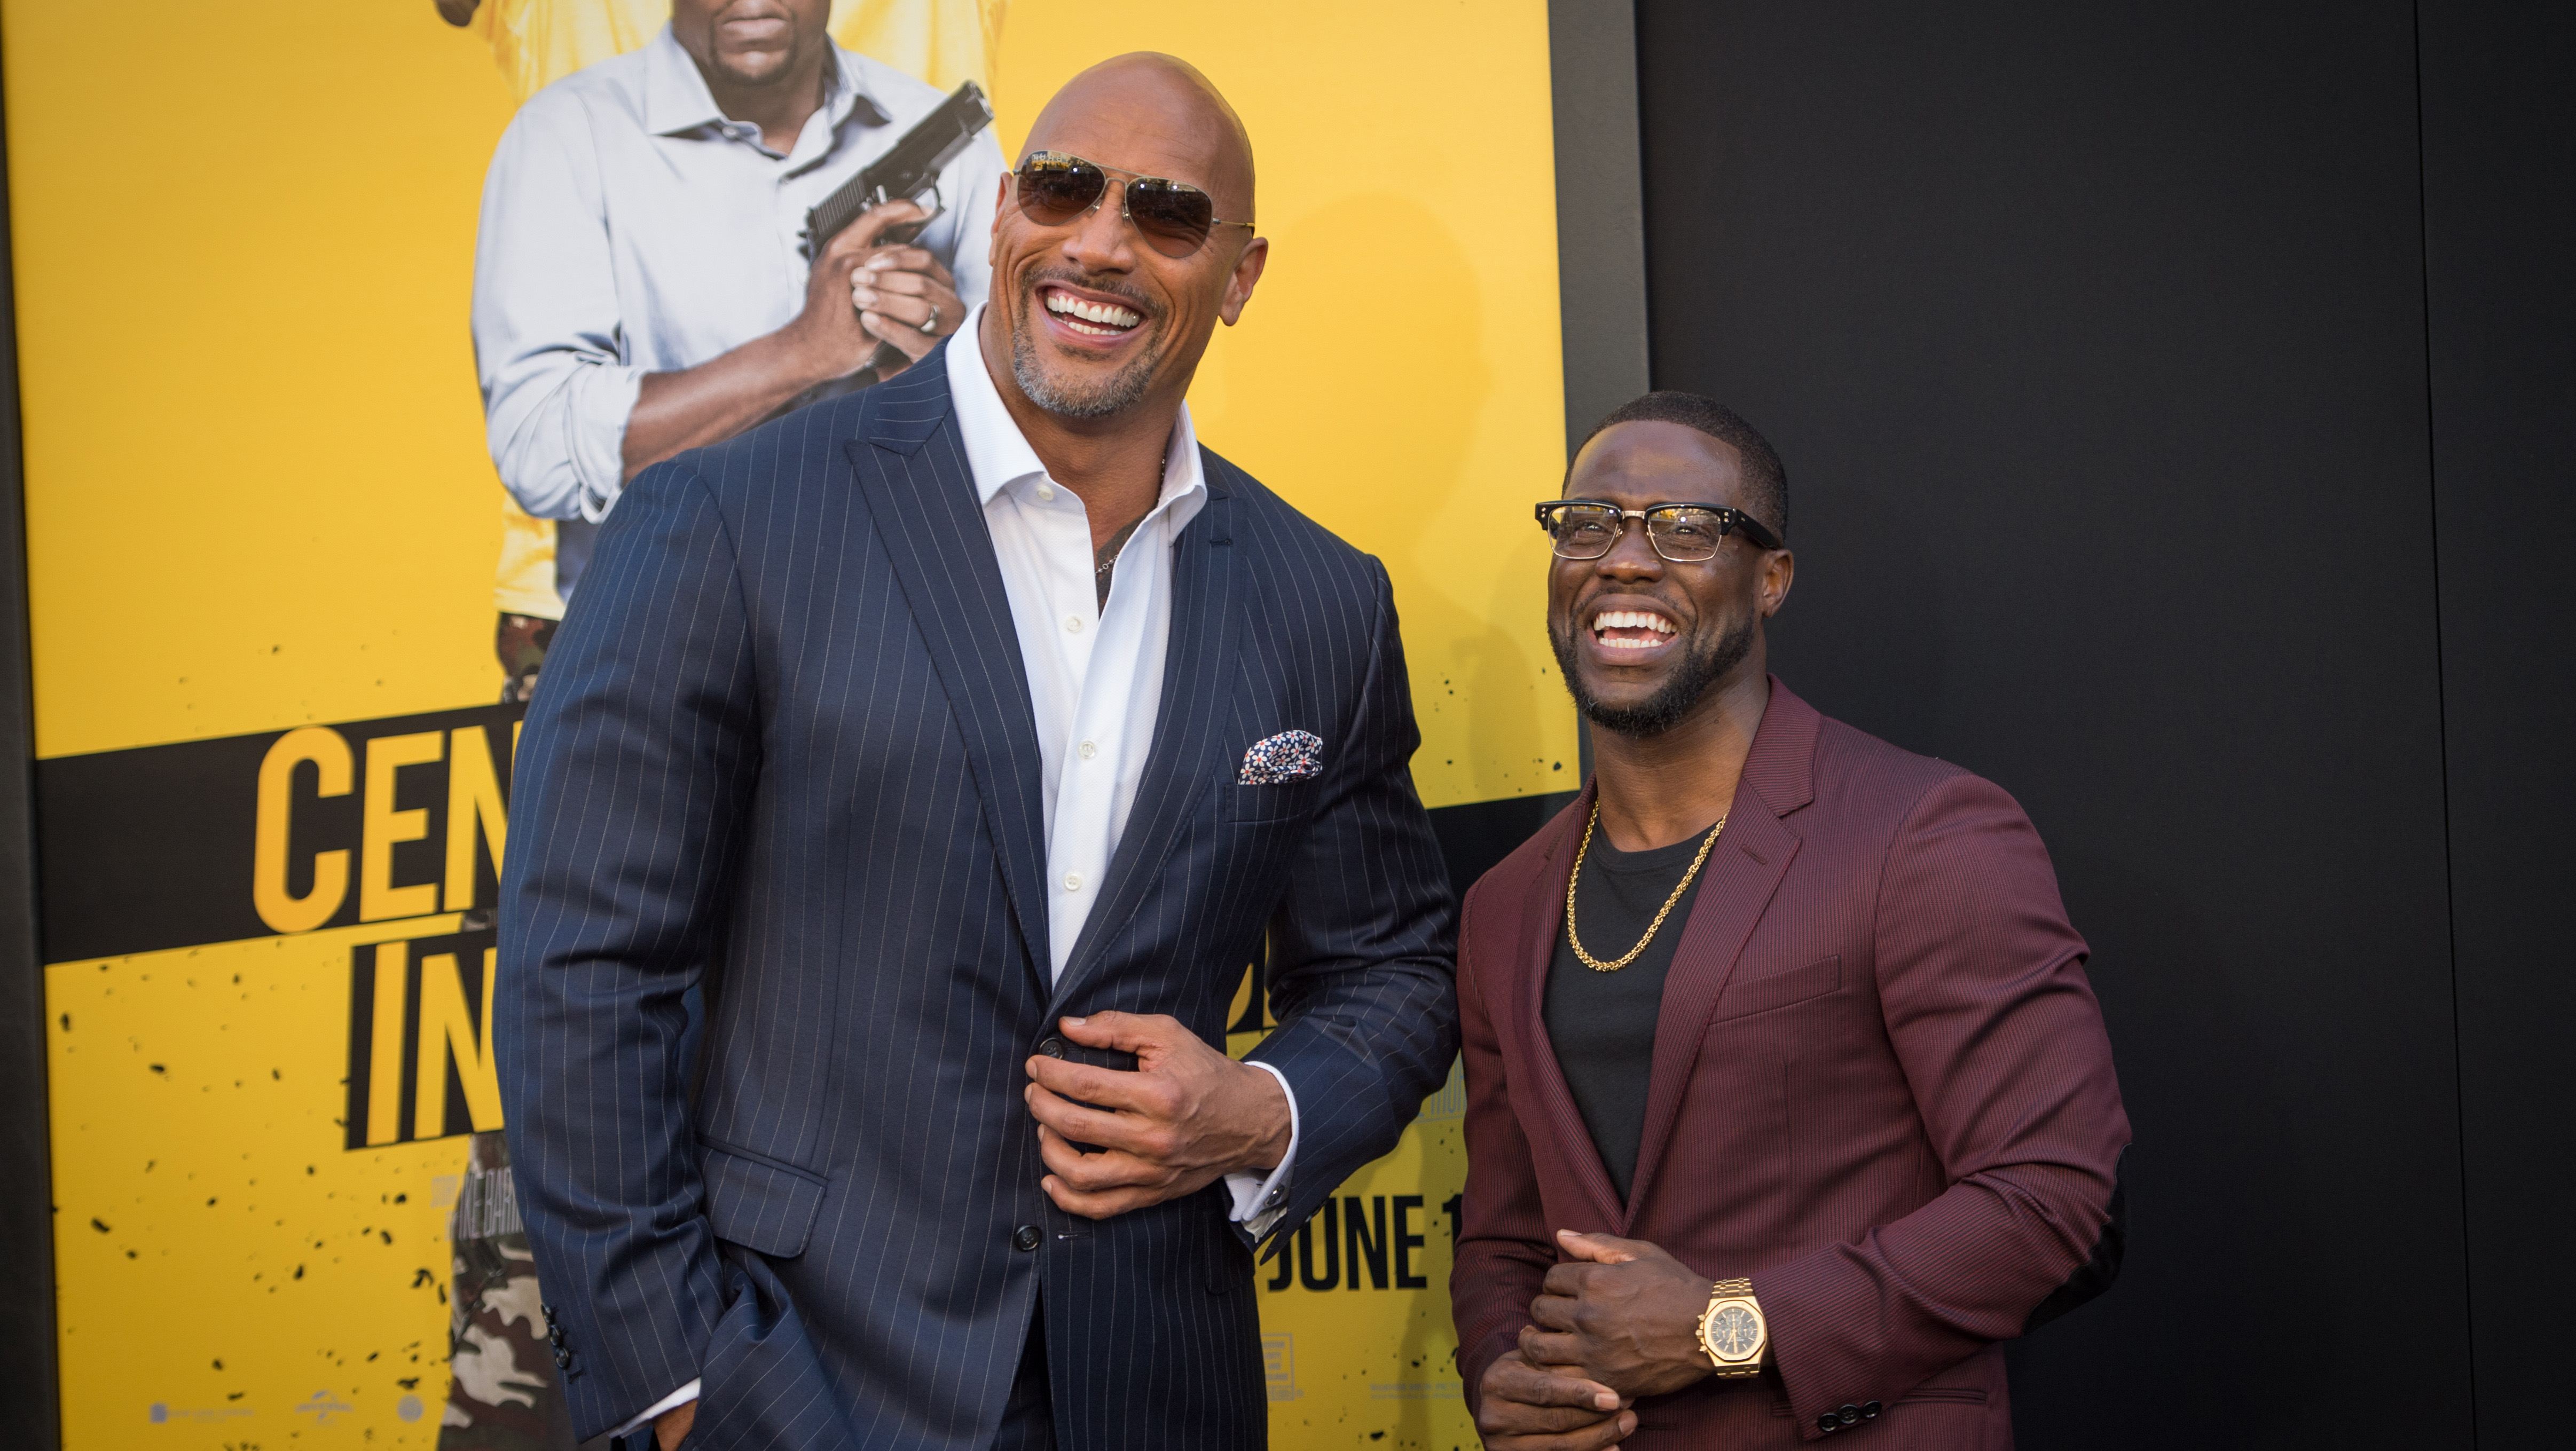 Kevin Hart Dwayne Johnson Talk Their Brotherly Chemistry At Central Intelligence Premiere The Hollywood Reporter